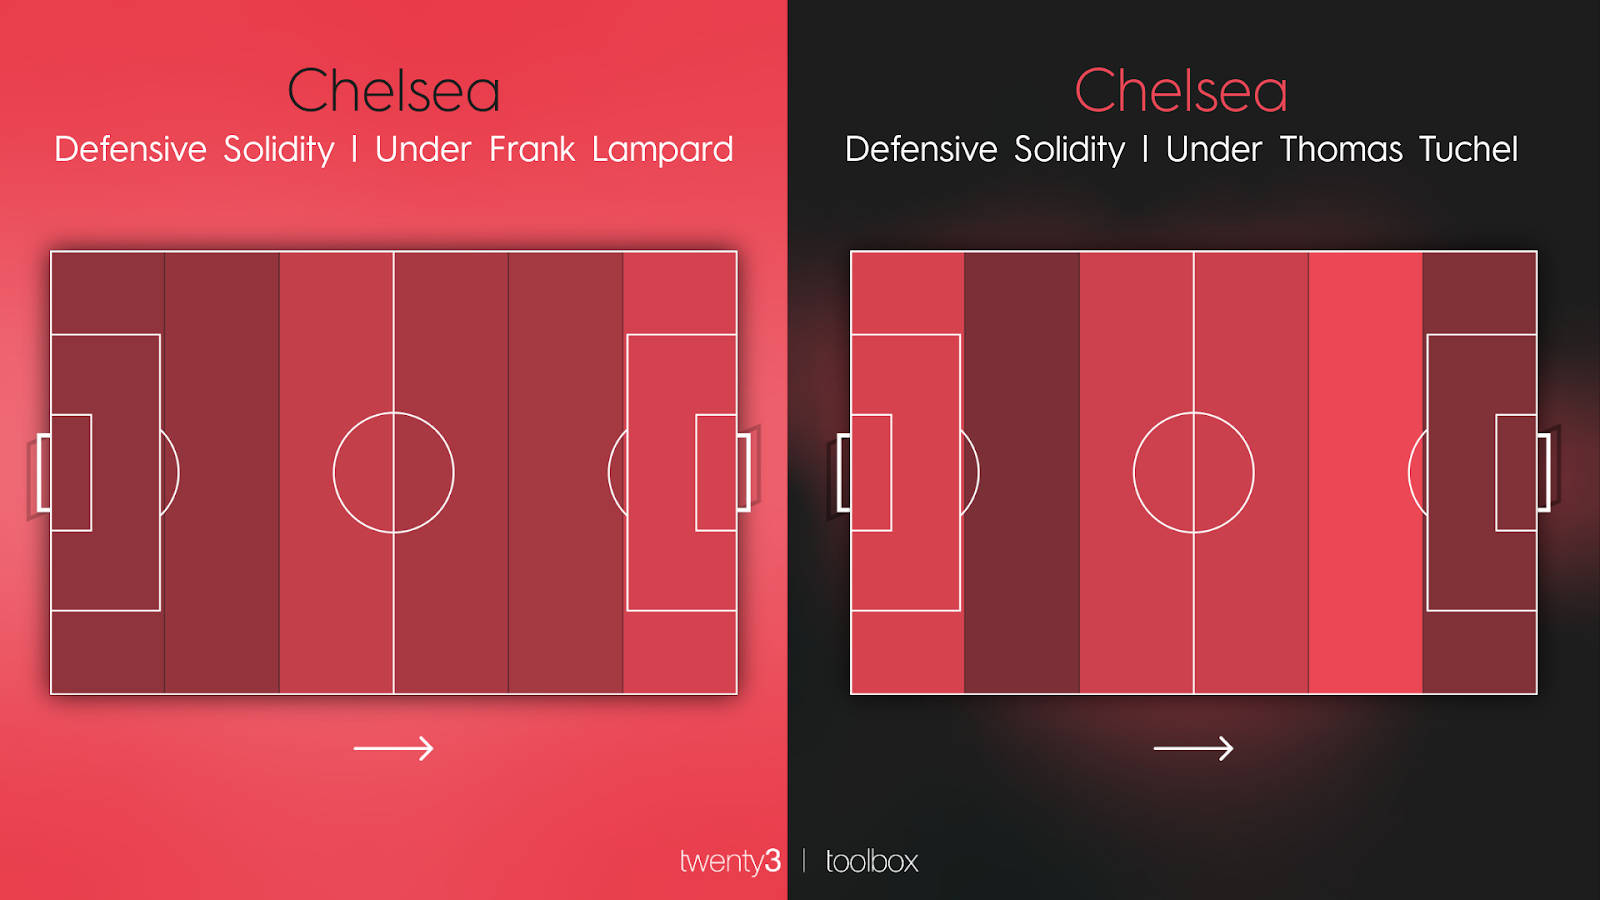 Chelsea's defensive solidity map under Frank Lampard and Thomas Tuchel.